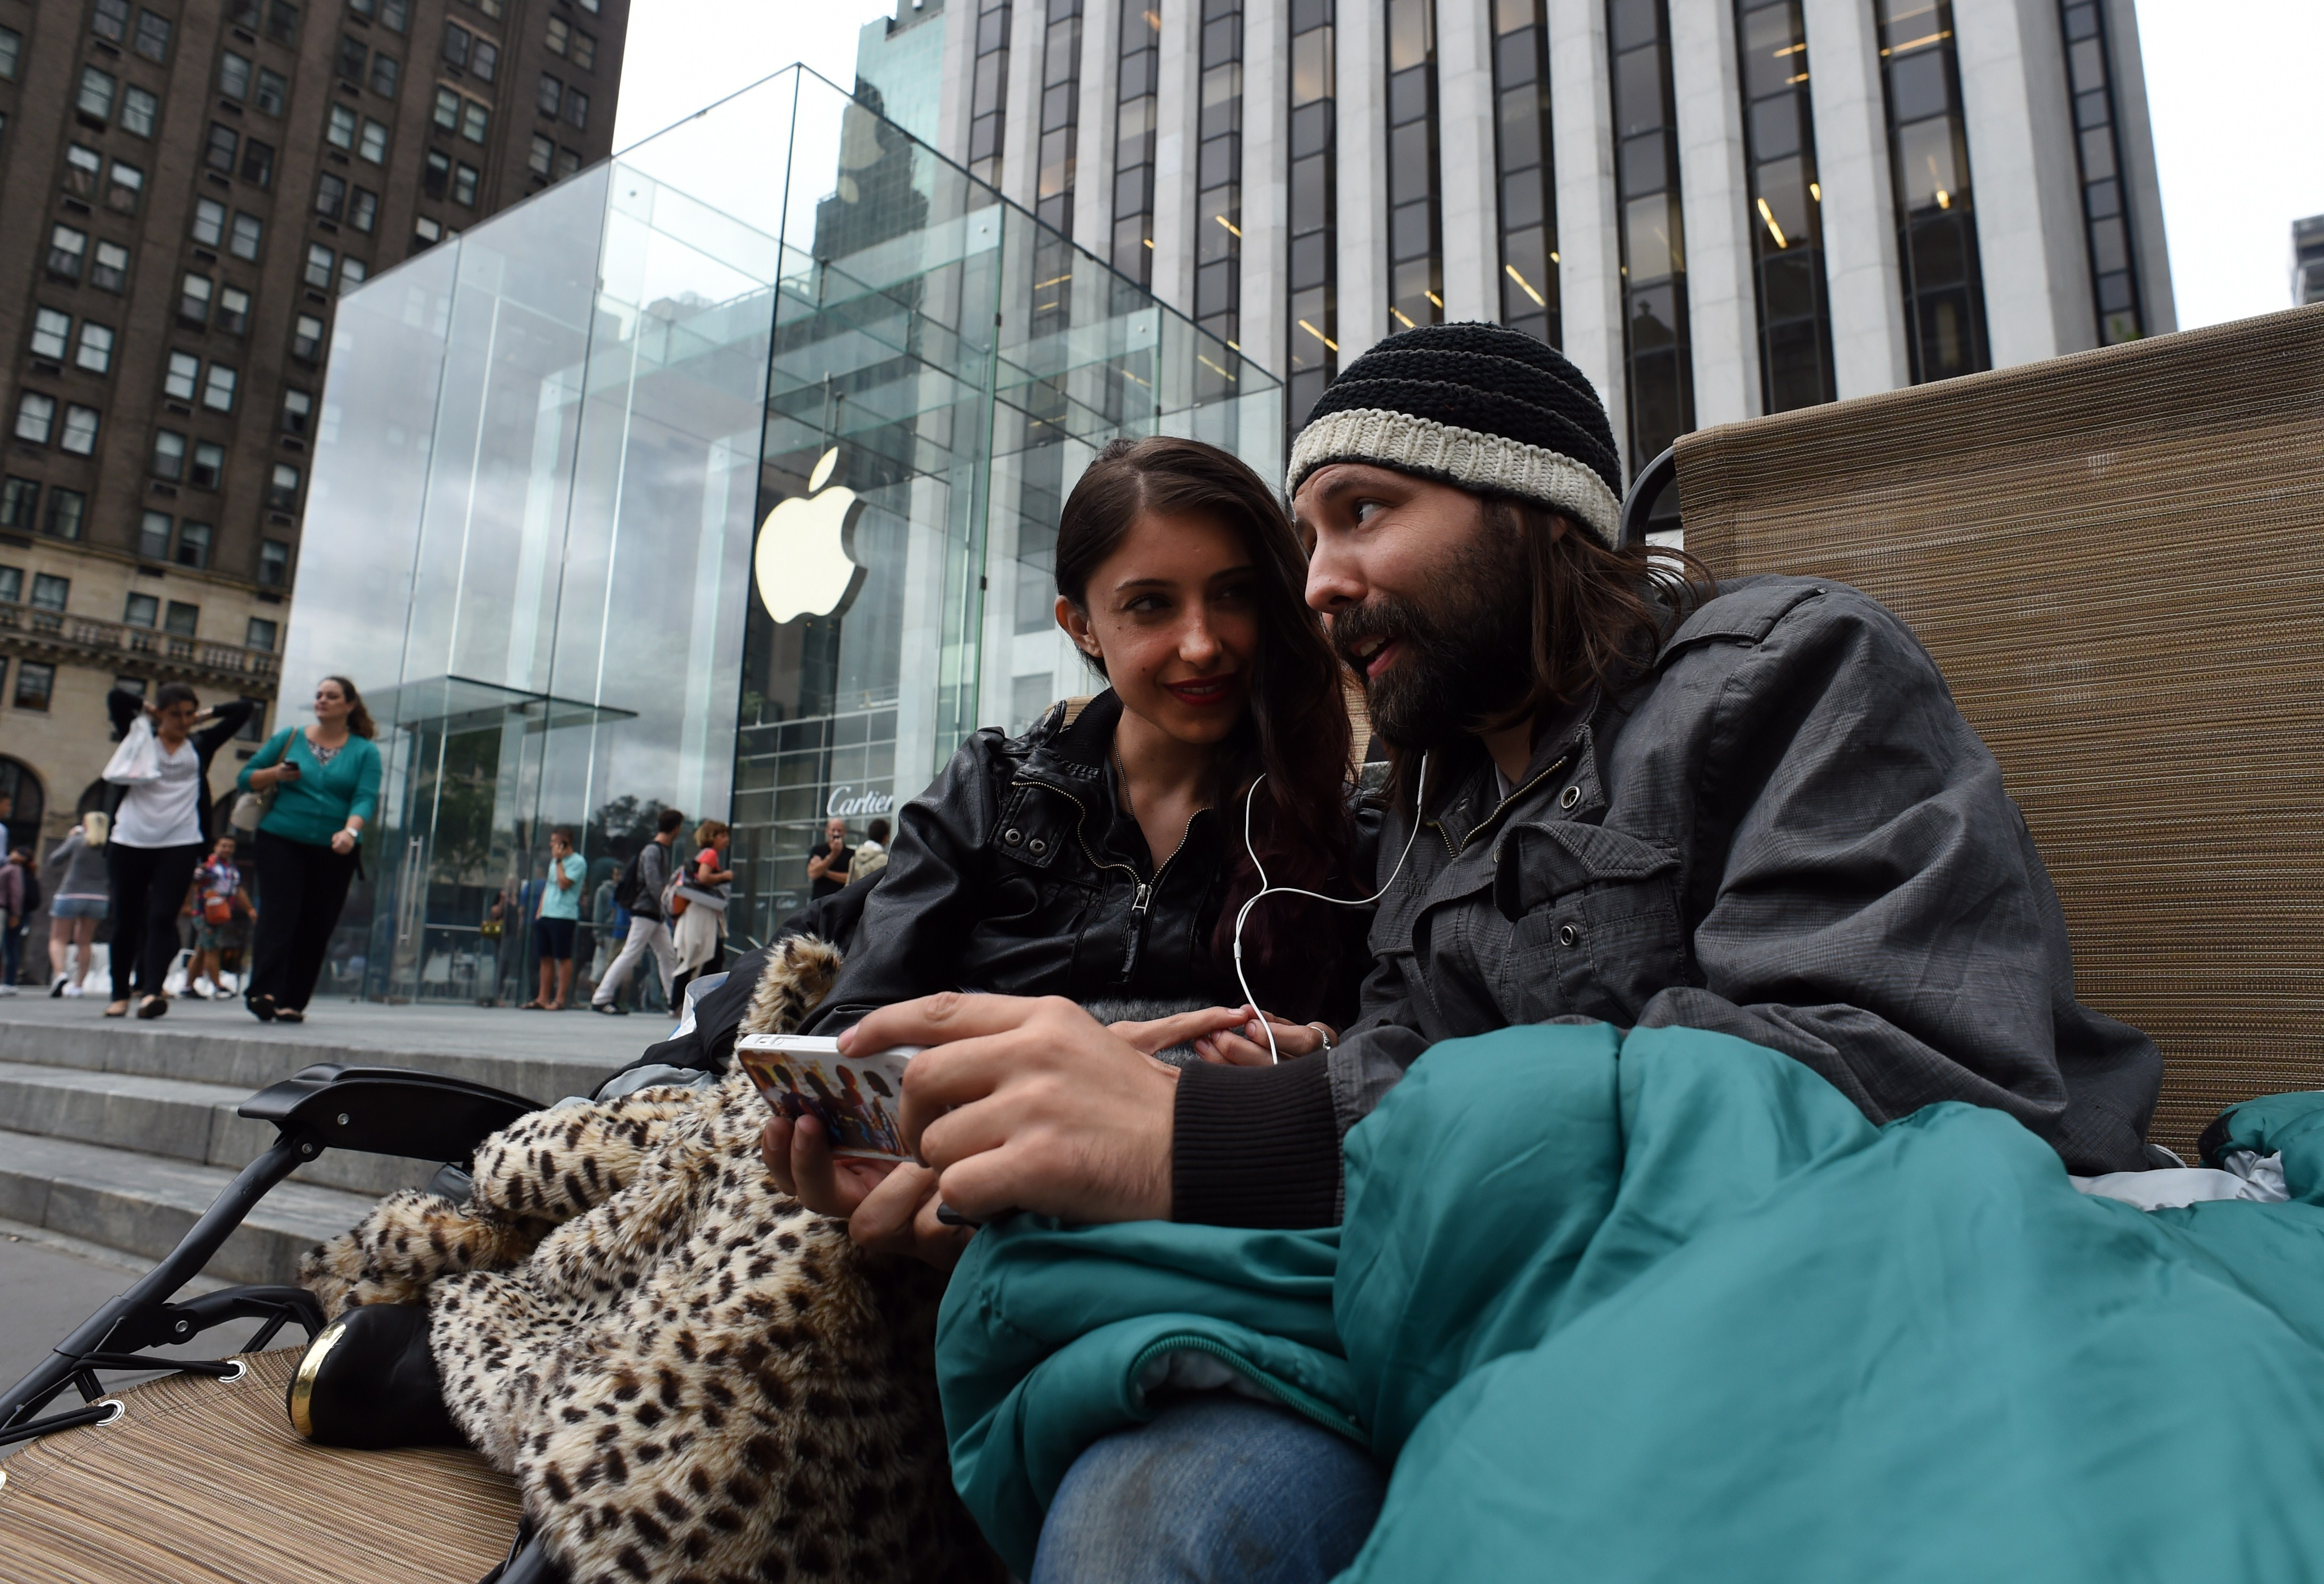 Moon Ray (L) and her husband Jason Ray talk on Skype as they wait in line September 9, 2014 outside the Apple Store on 5th Avenue in New York.